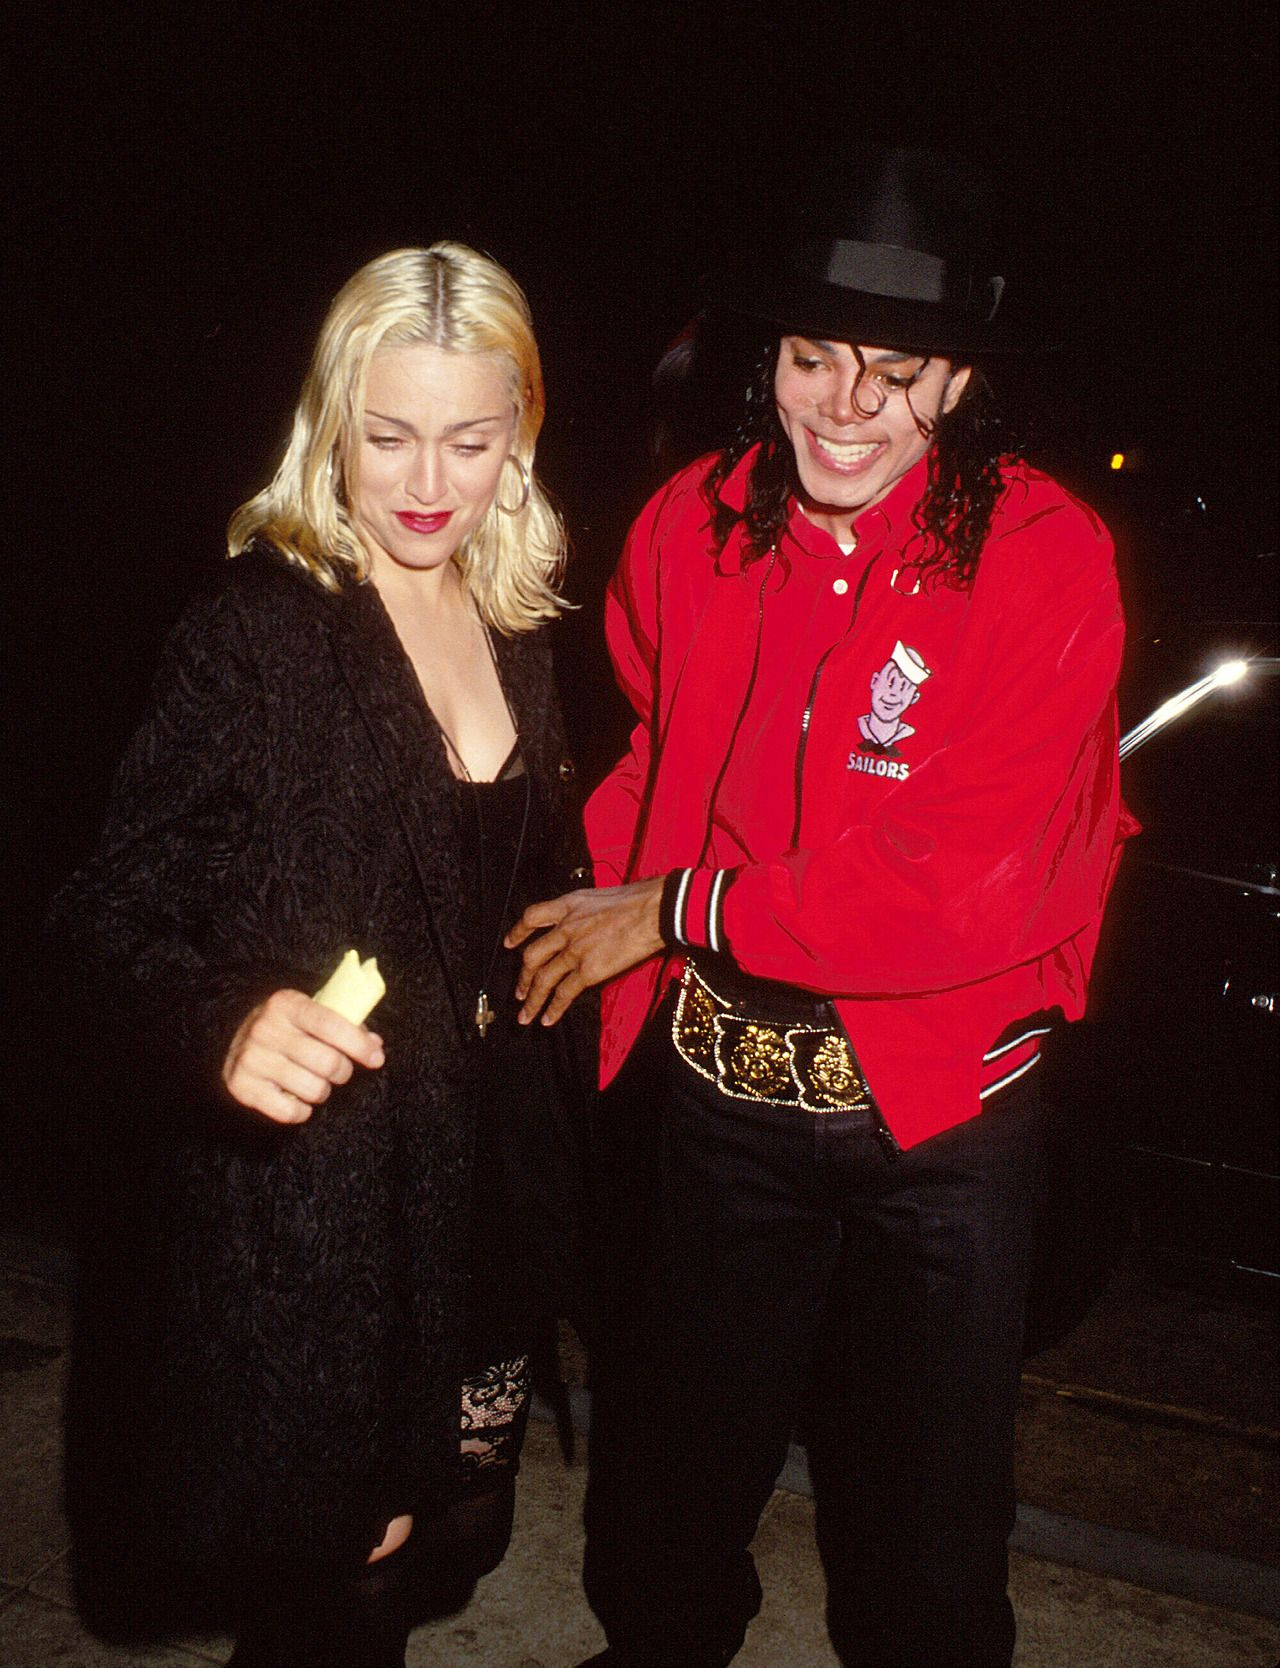 Michael Jackson And Madonna At The Ivy Restaurant Eclectic Vibes Michael Jackson Smile Michael Jackson Michael Jackson Neverland